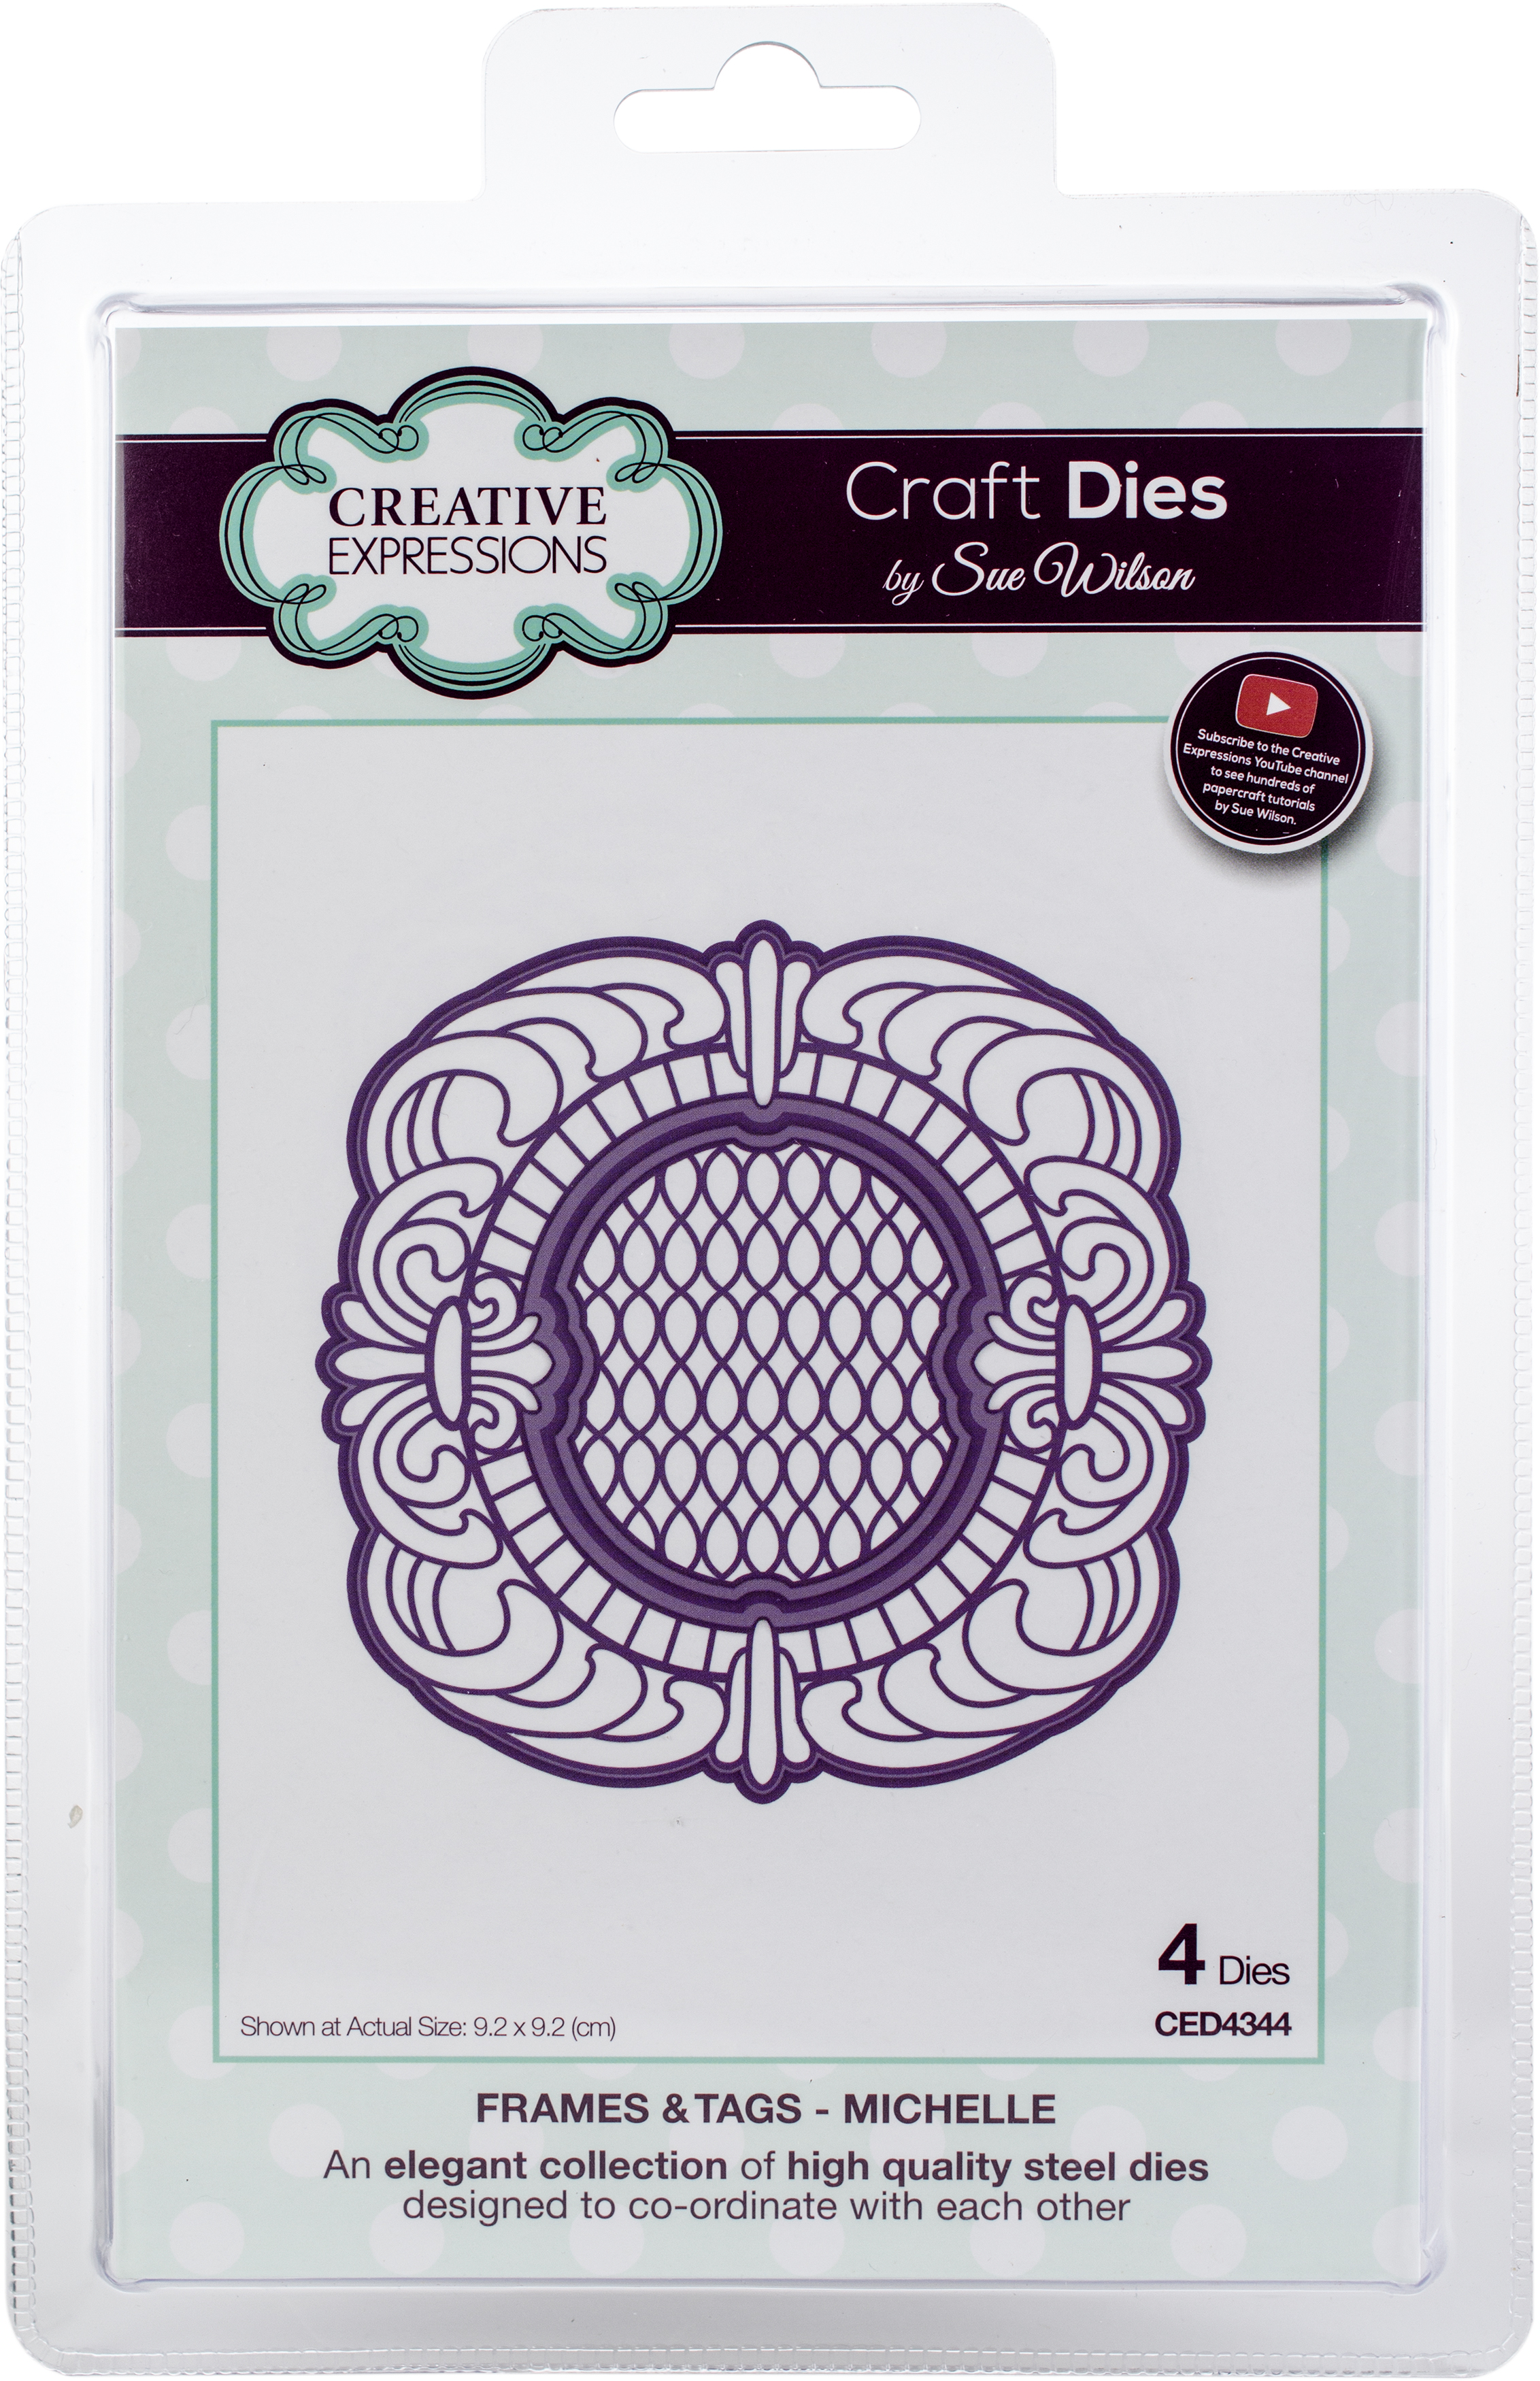 Creative Expressions Craft Dies By Sue Wilson-Frames & Tags-Michelle